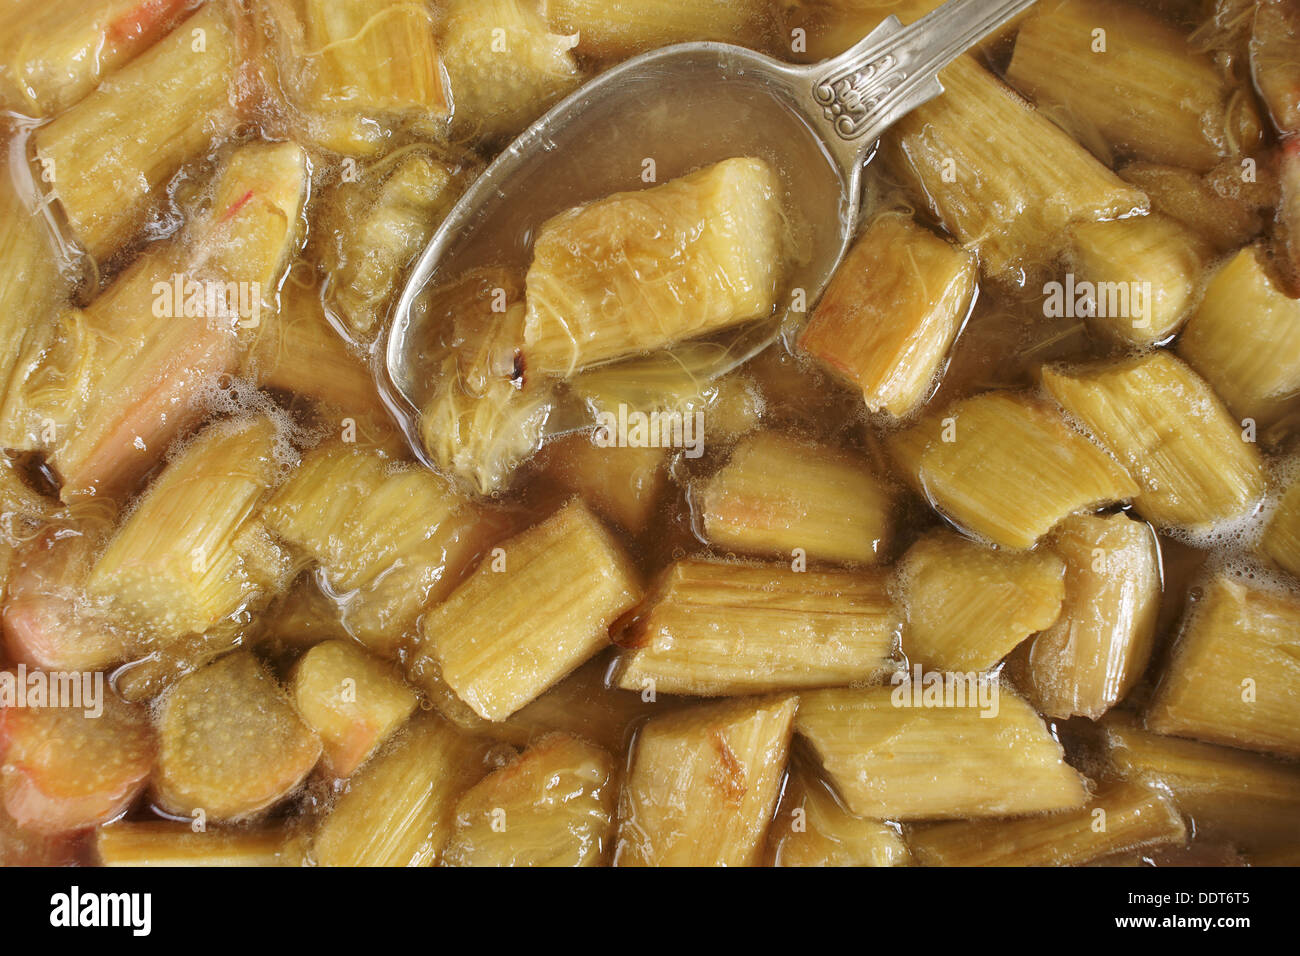 Stewed Rhubarb or Rhubarb baked with sugar and it's own natural juices - Stock Image